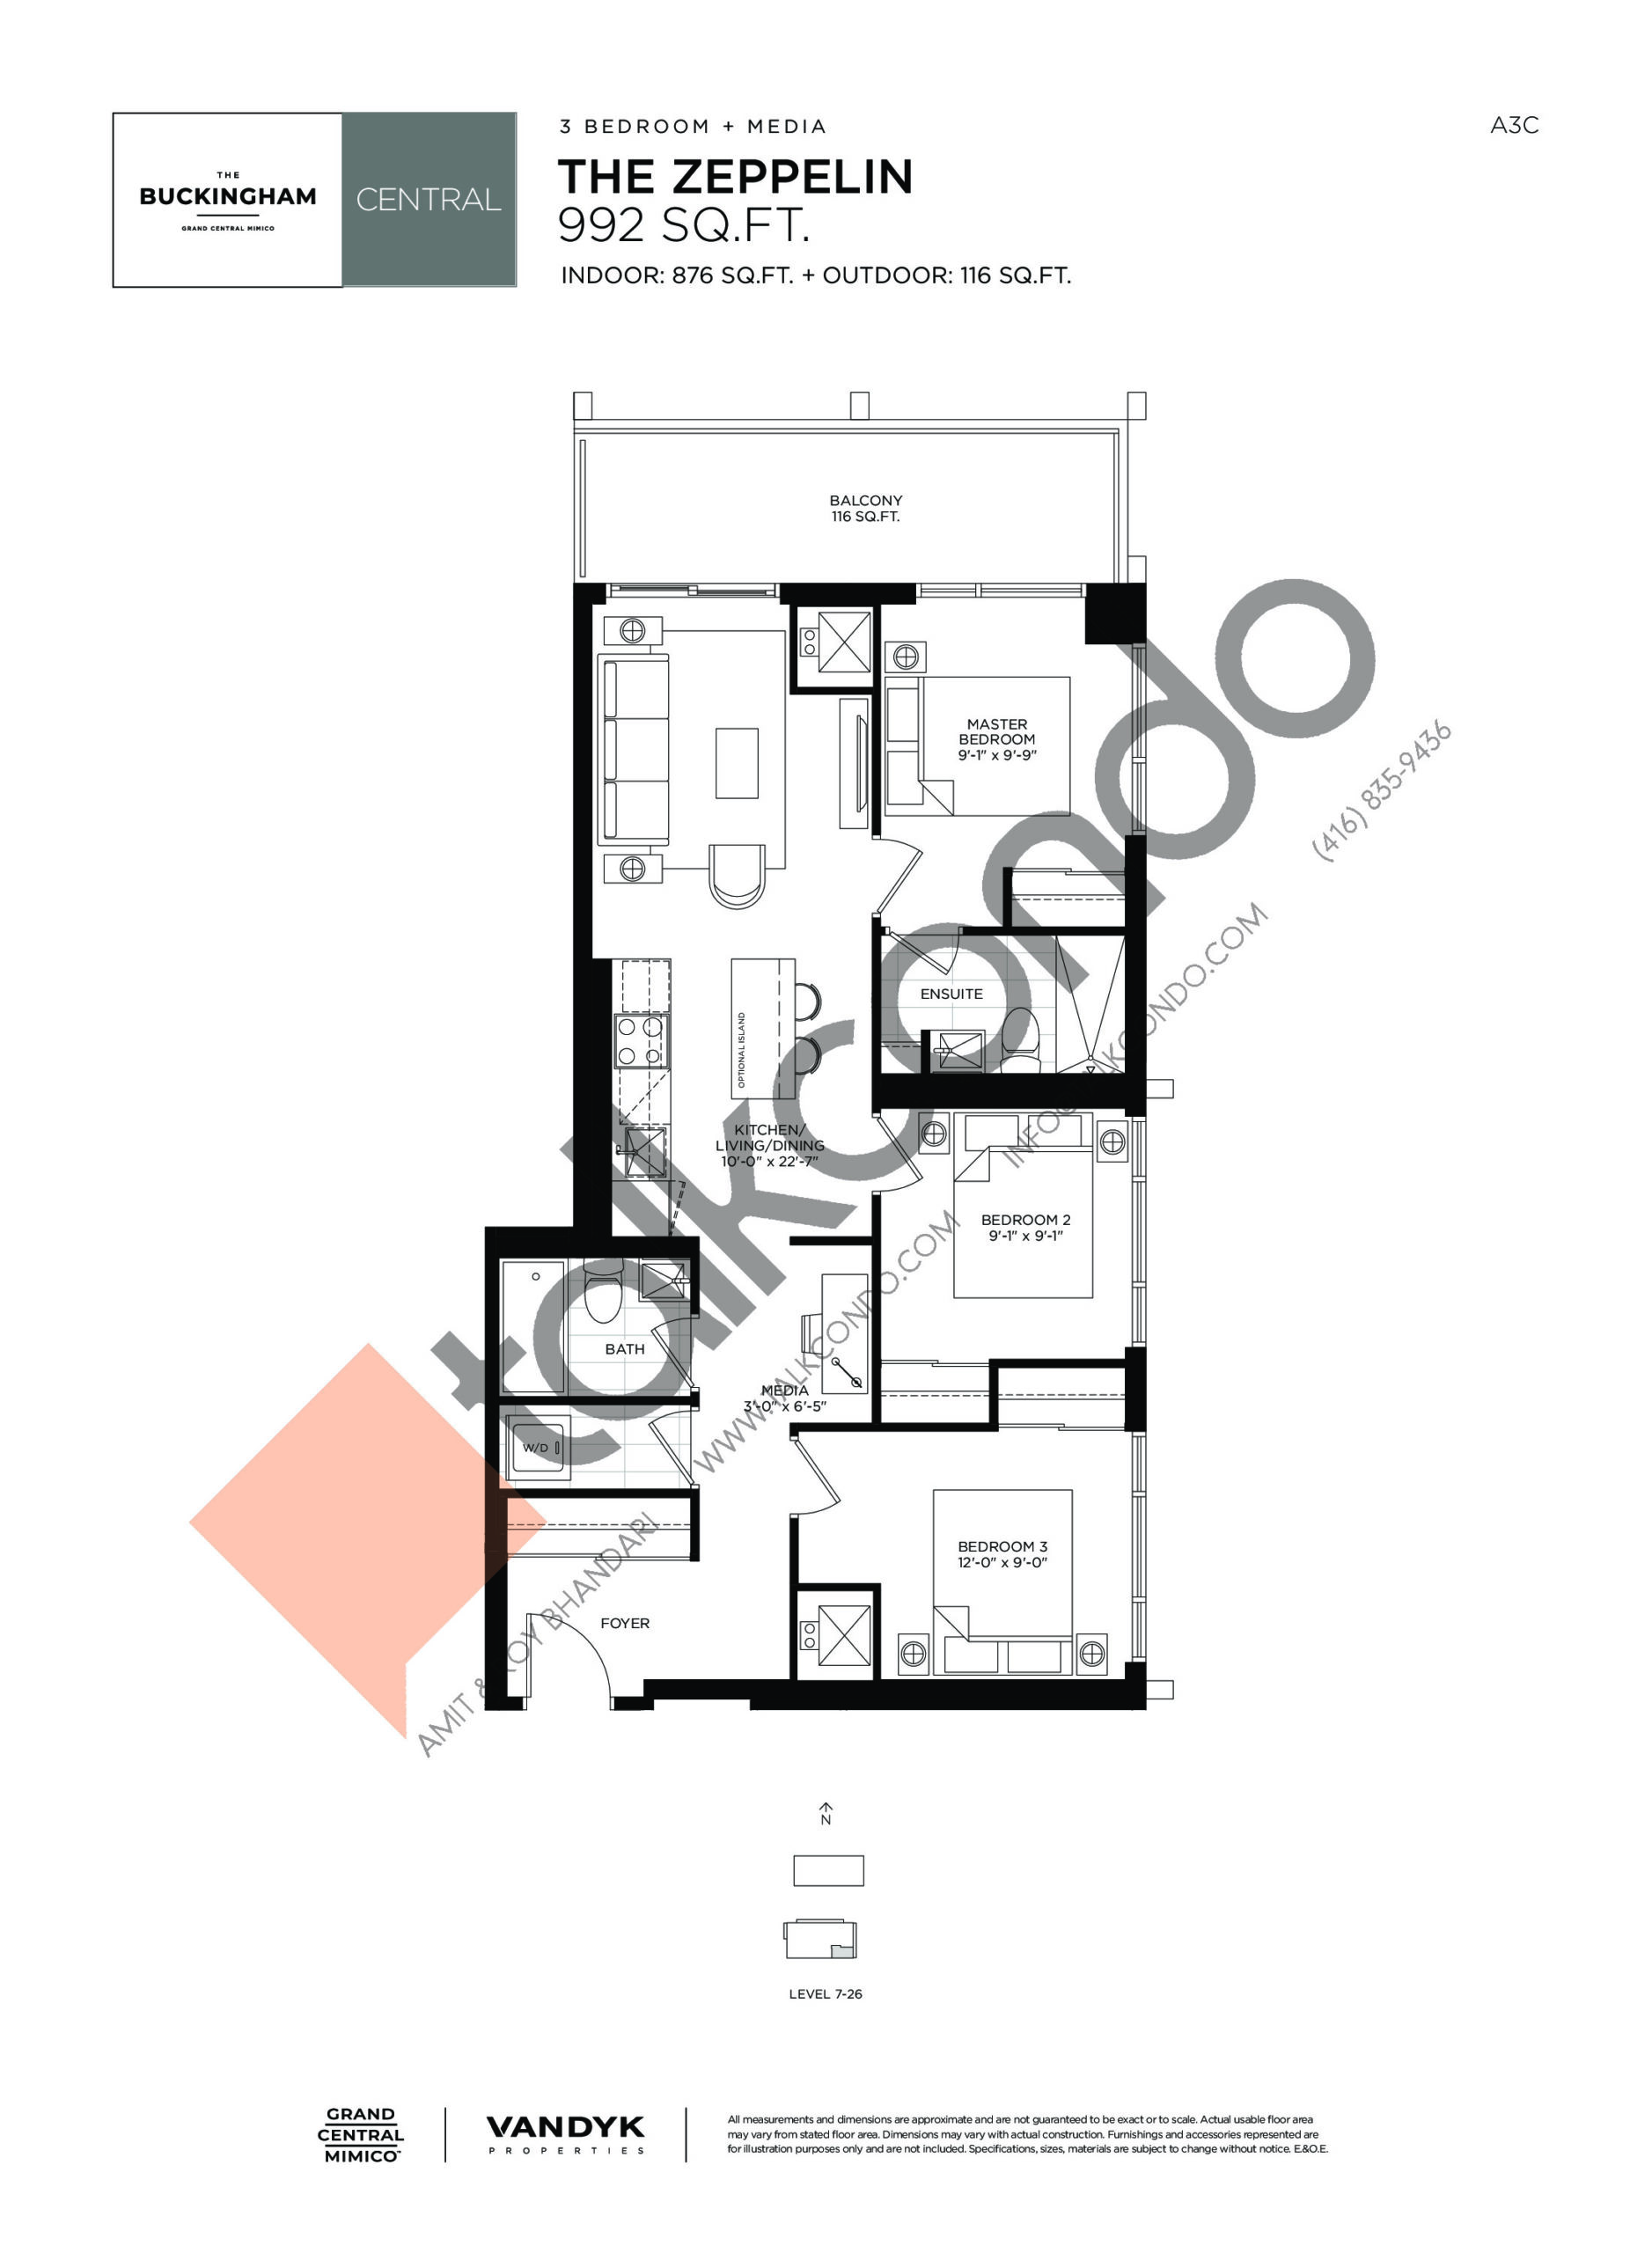 The Zeppelin Floor Plan at Grand Central Mimico Condos - 876 sq.ft